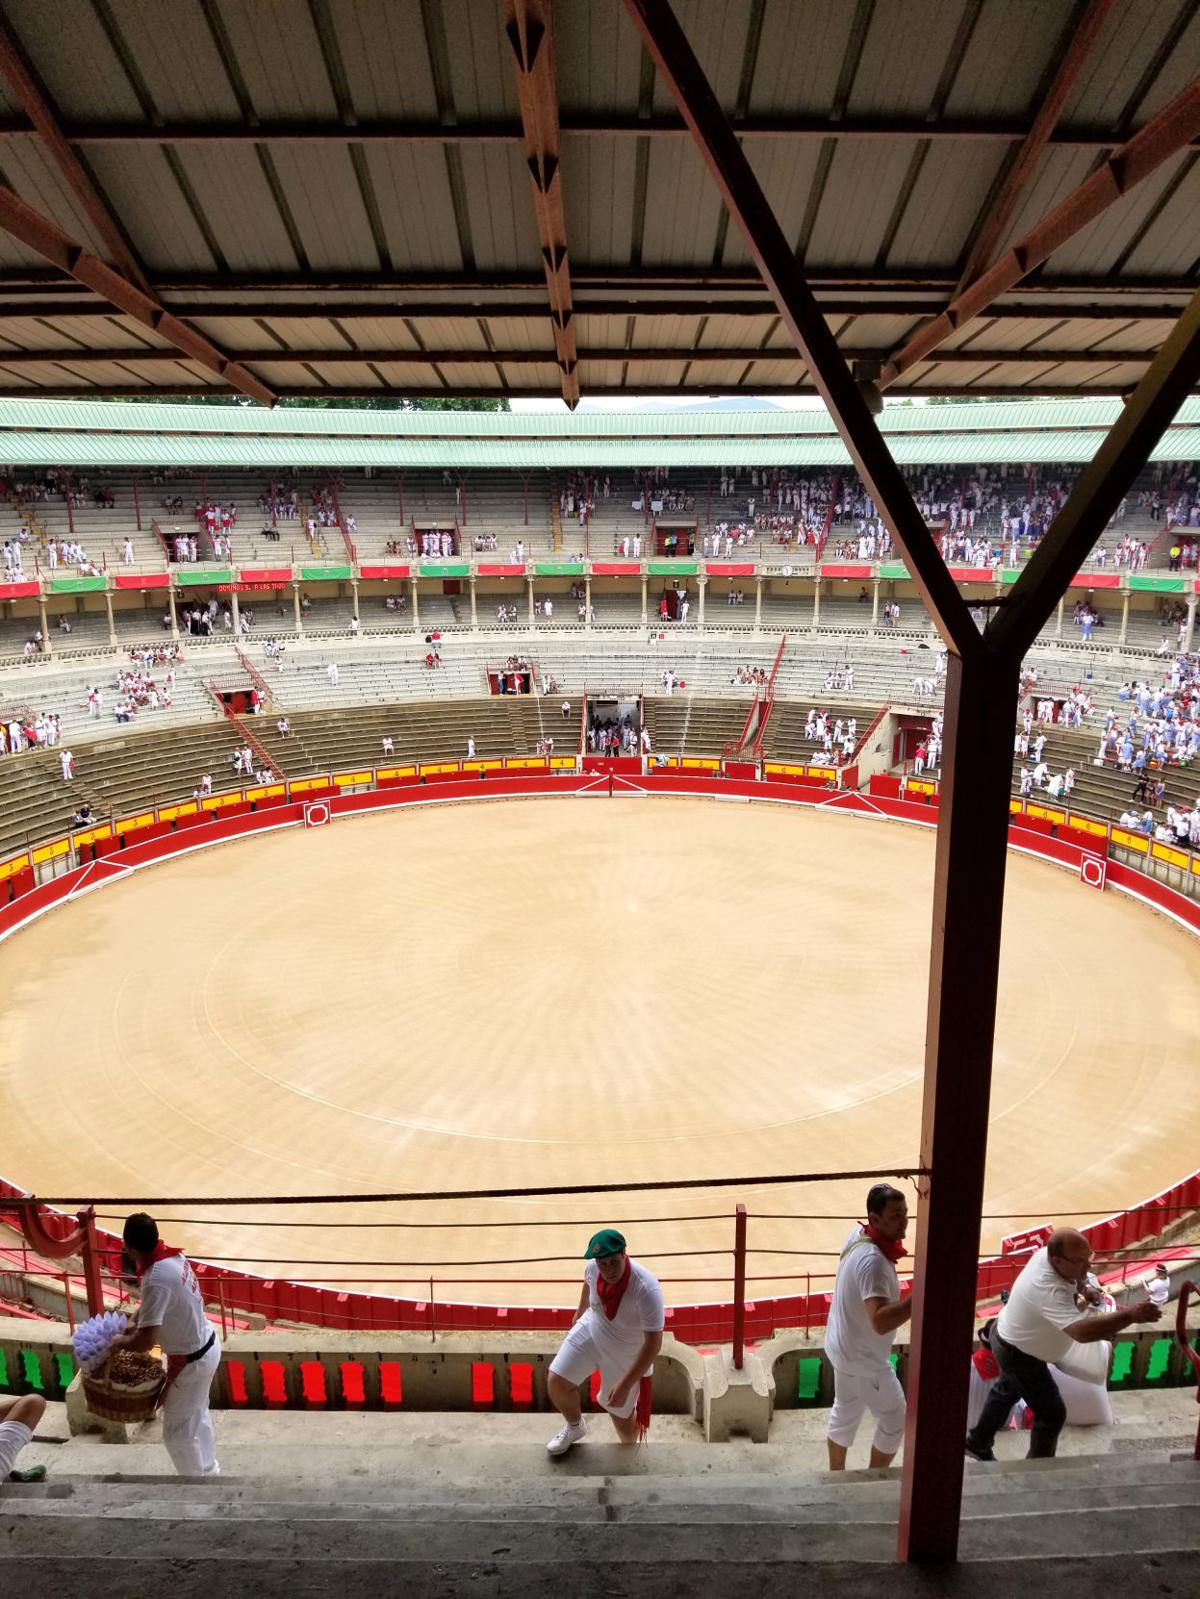 The arena in Pamplona